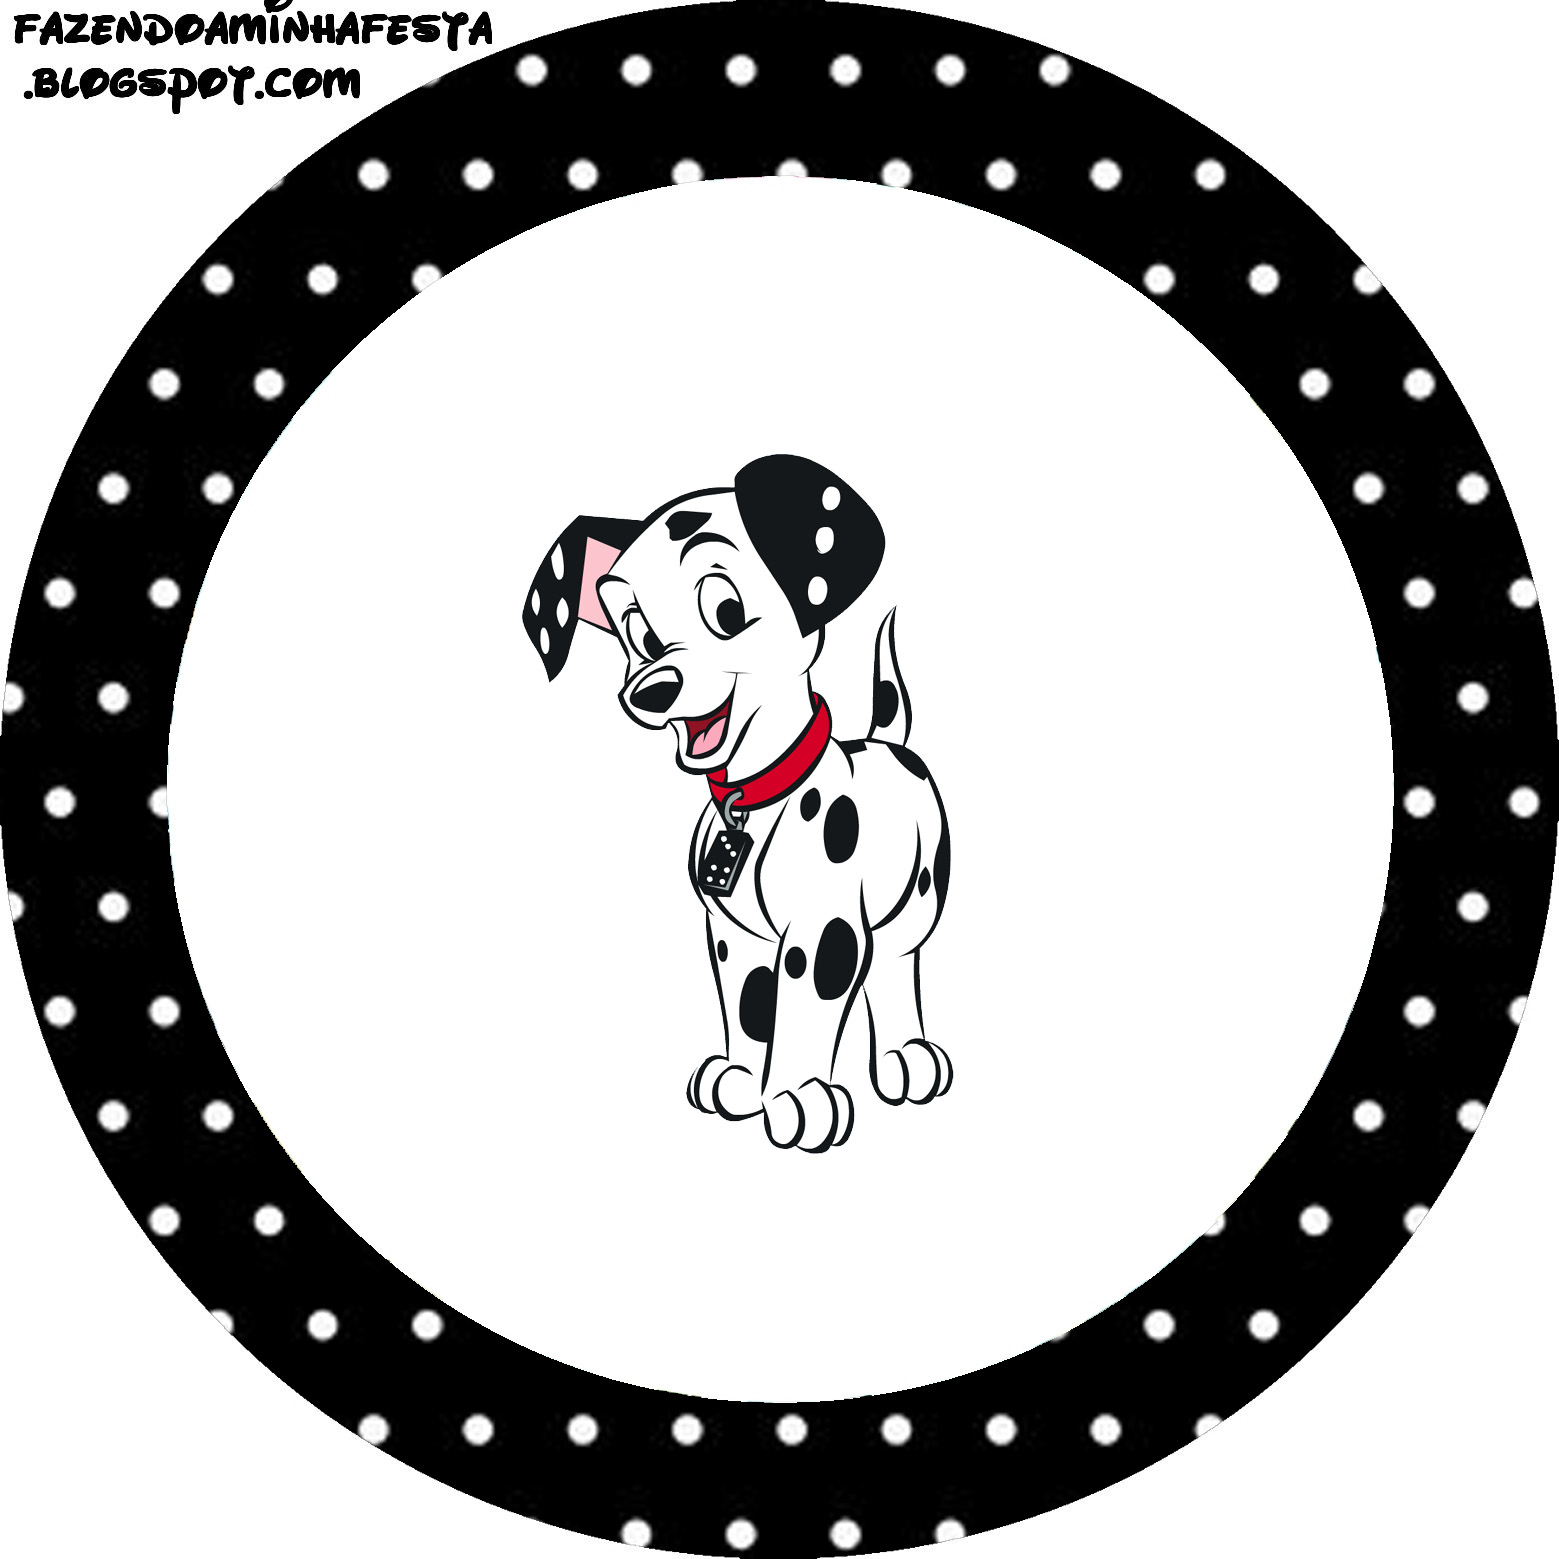 photo about Dalmation Printable identified as 101 Dalmatians inside Black and Blue: Free of charge Printable Cupcake